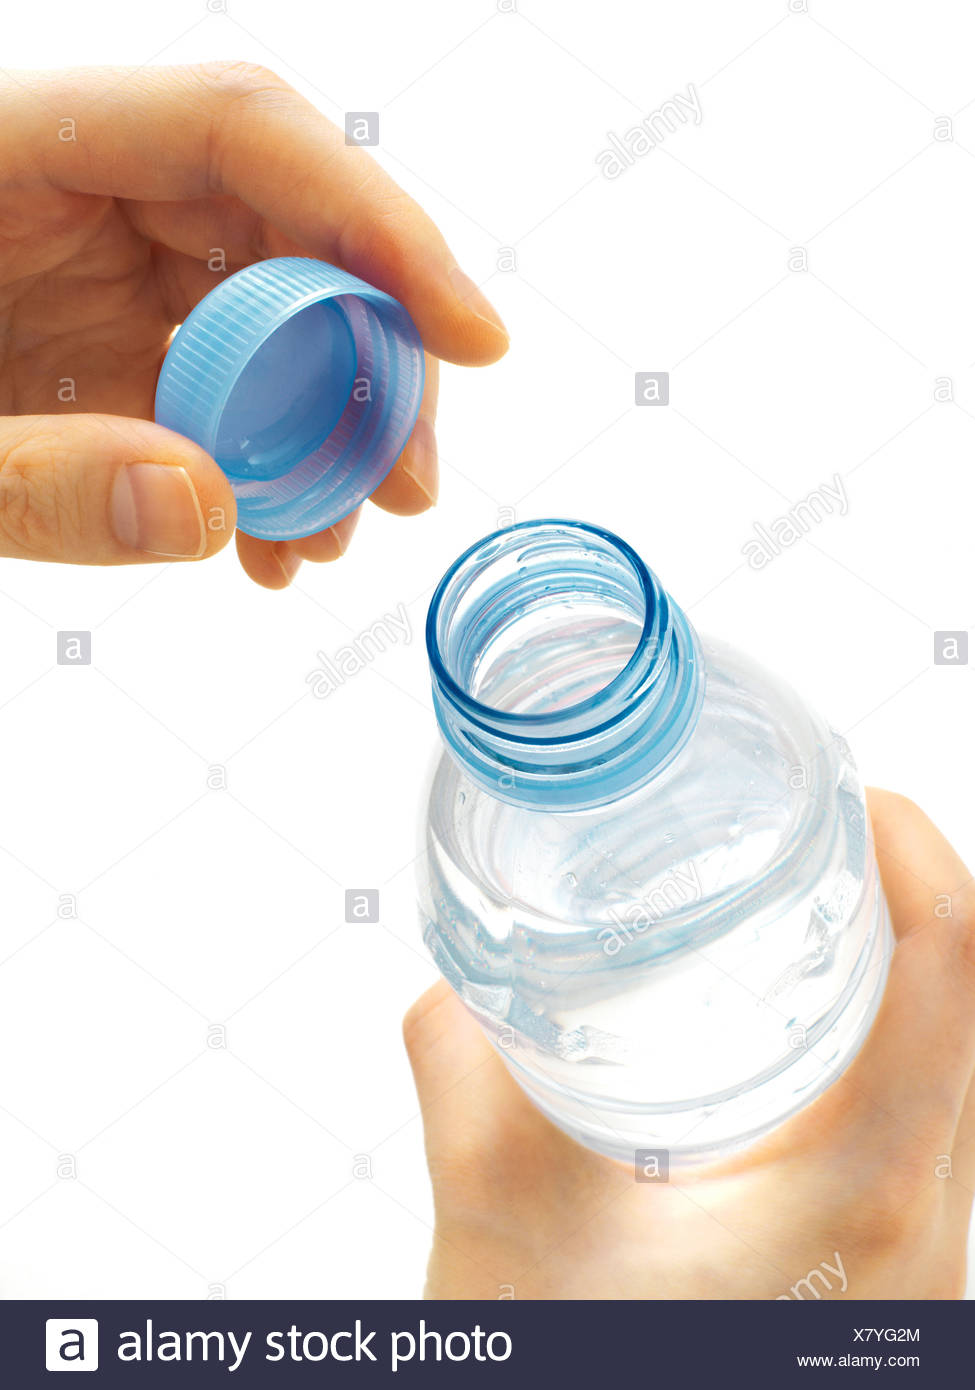 Female hand opening a water bottle - Stock Image